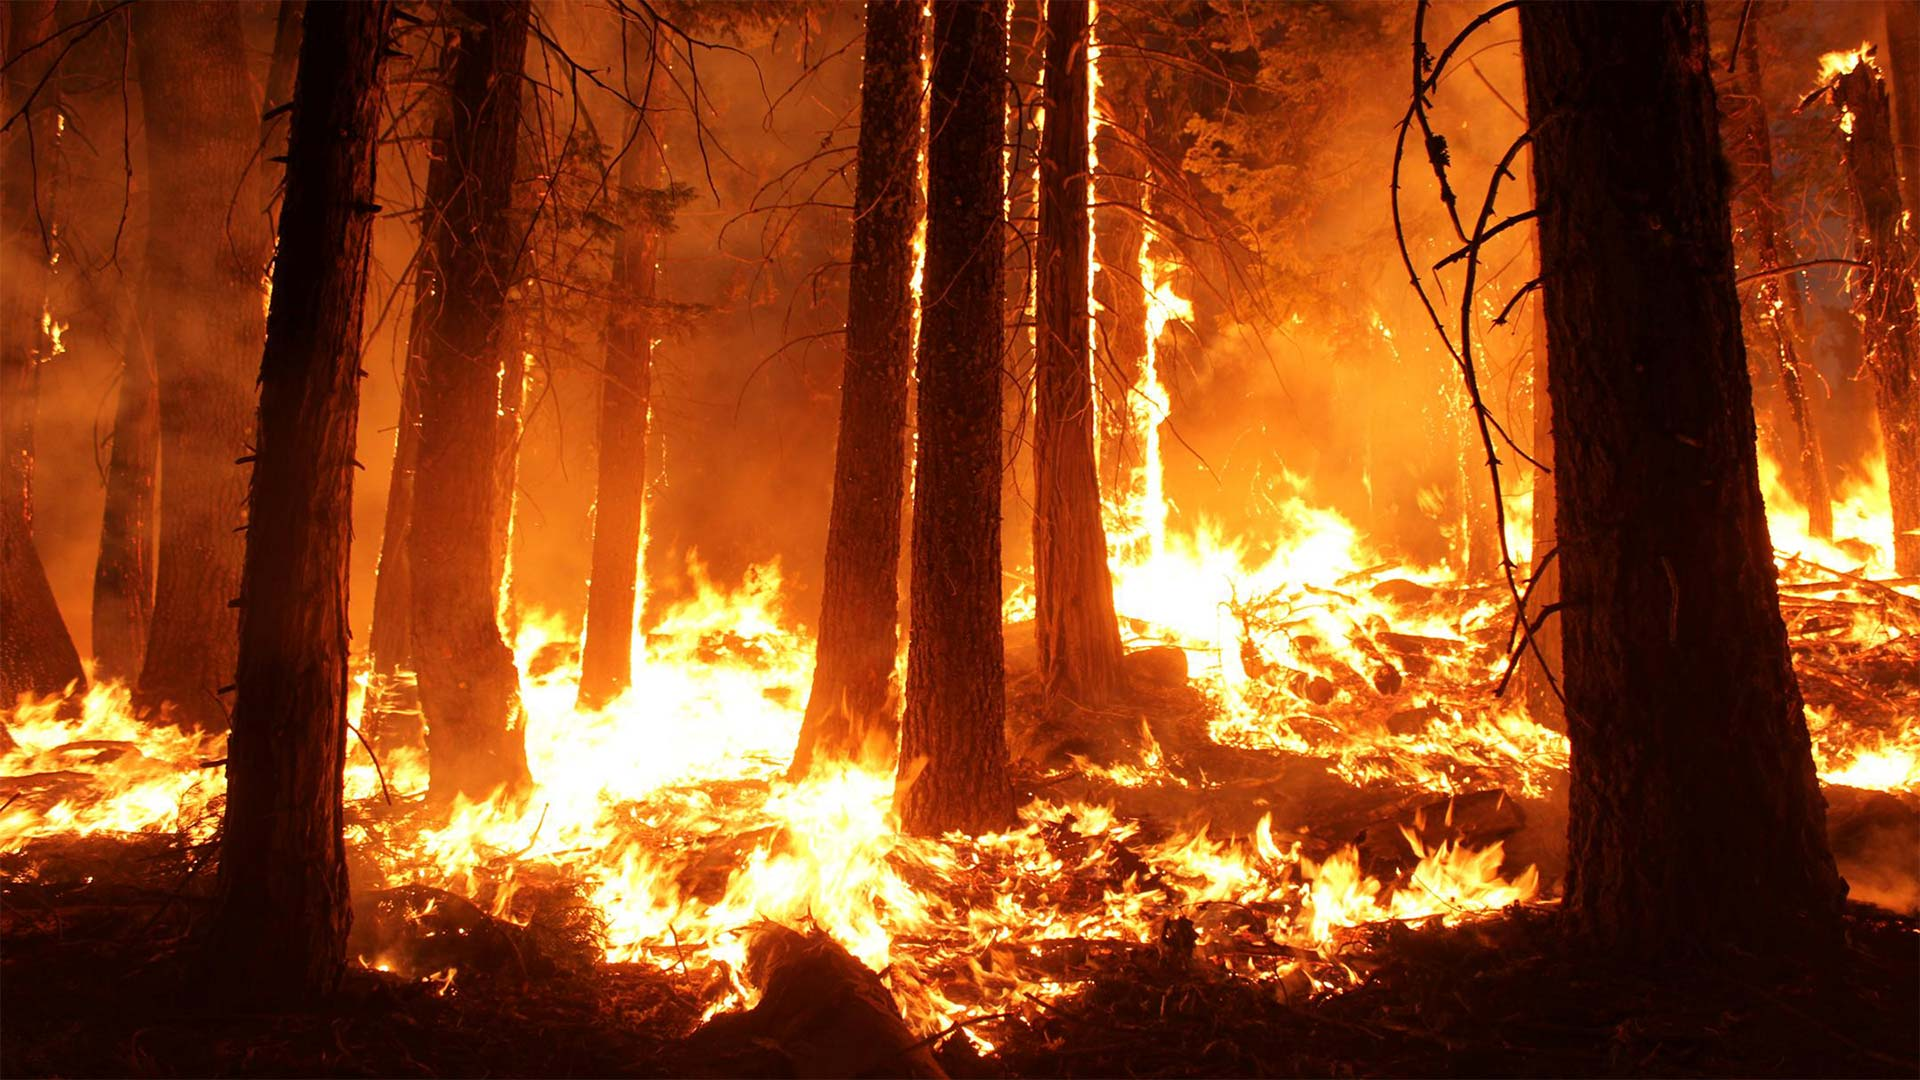 The 2013 Rim Fire in California burned more than 257,000 acres.